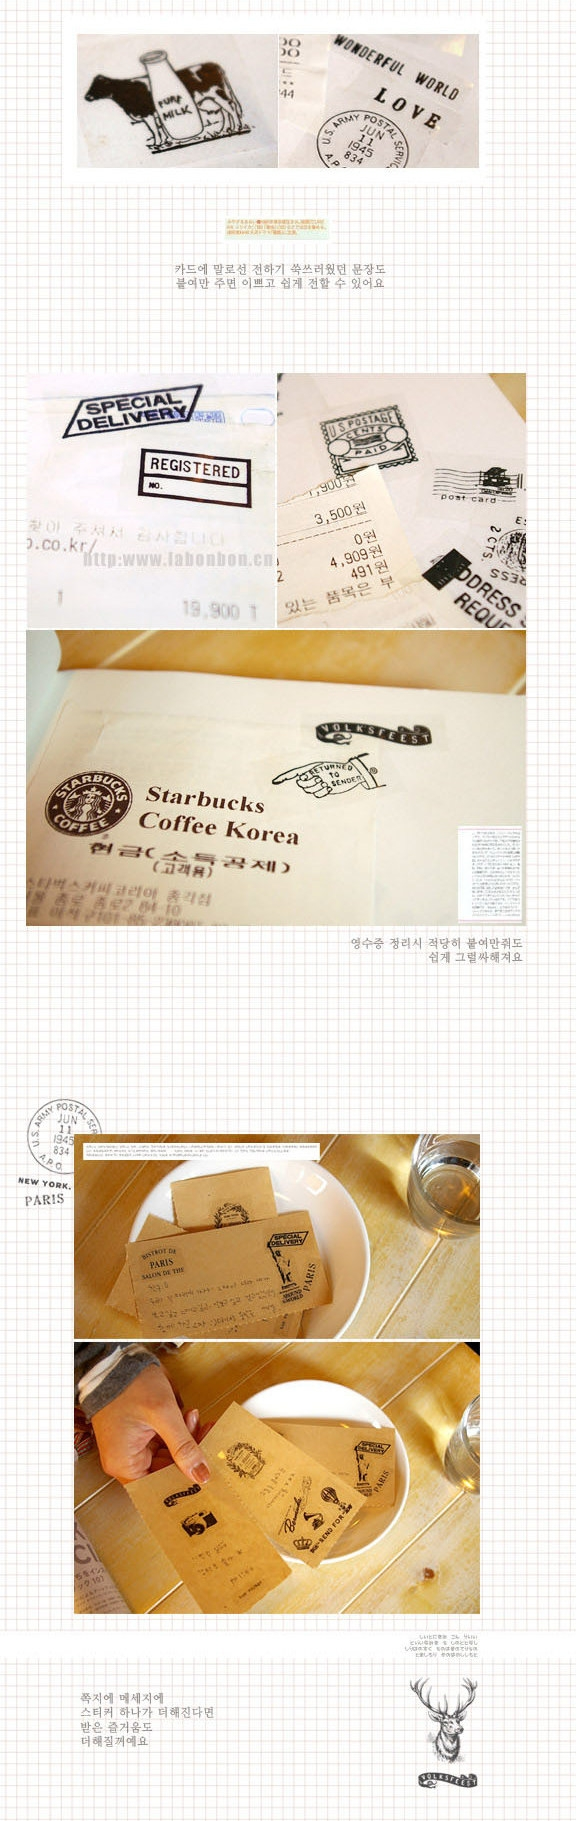 Xtra Precious Zakka eiffel sticker sample-002.jpg